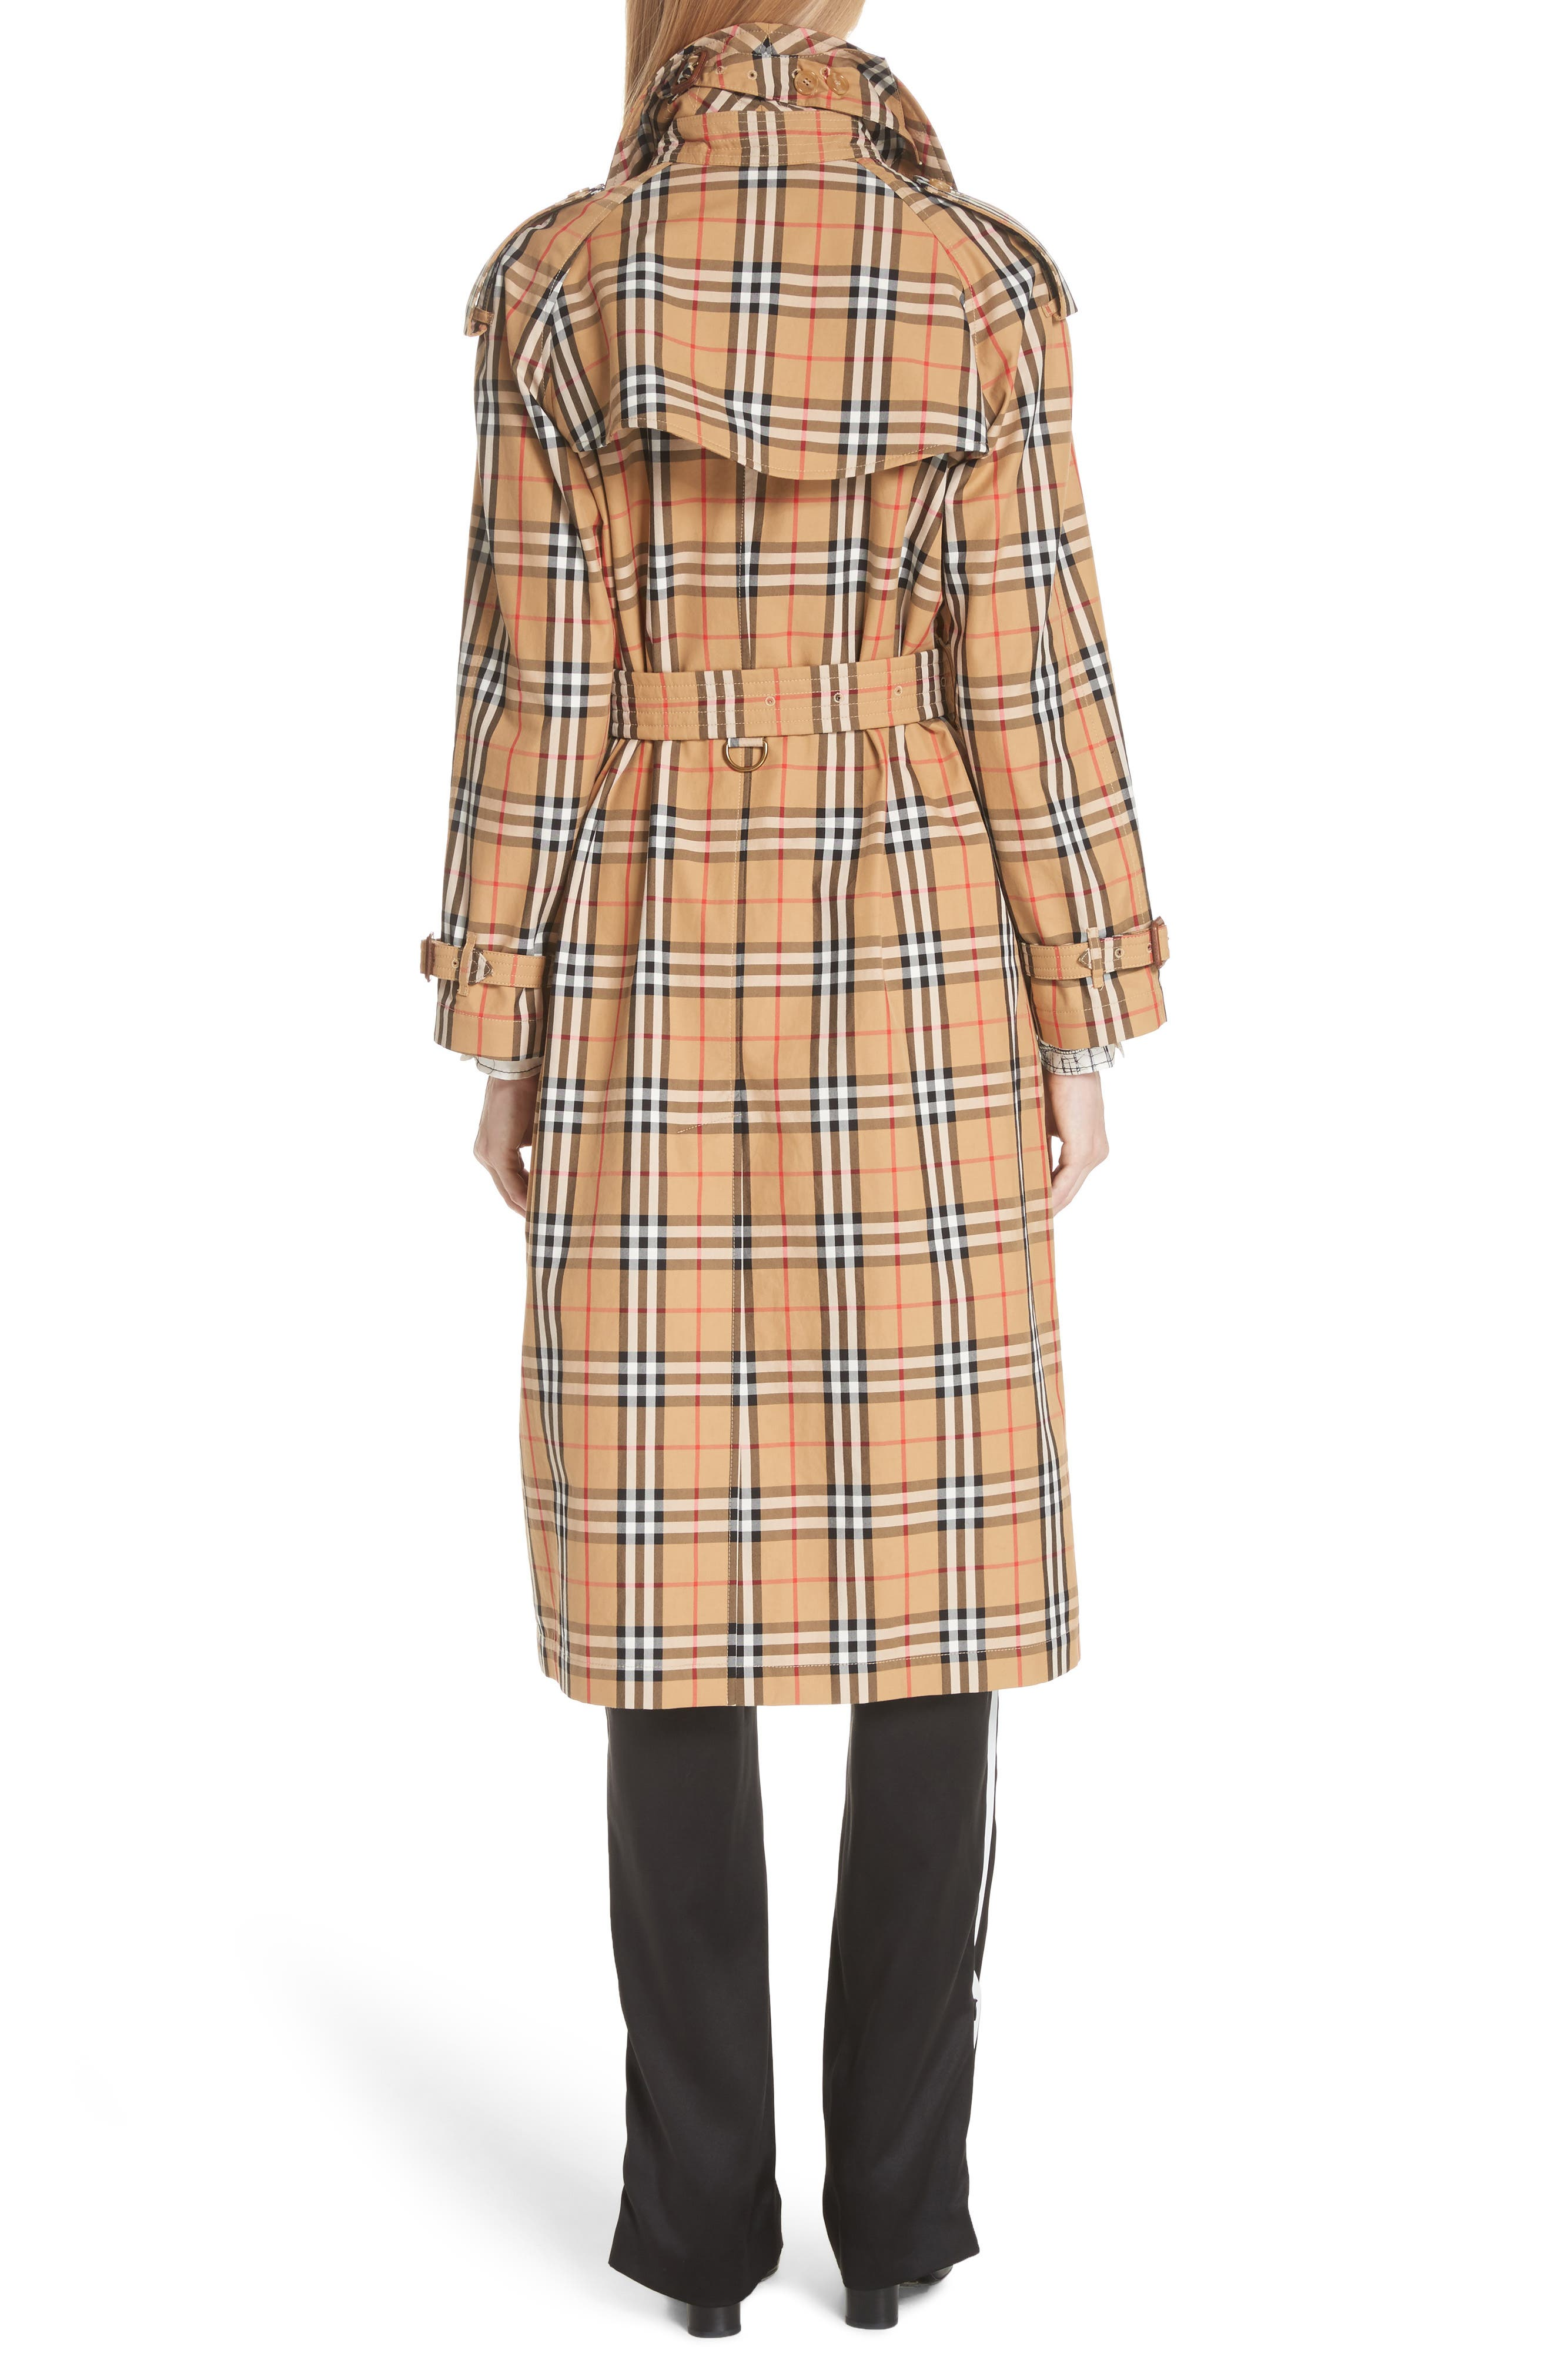 BURBERRY, Eastheath Vintage Check Trench Coat, Alternate thumbnail 2, color, ANTIQUE YELLOW